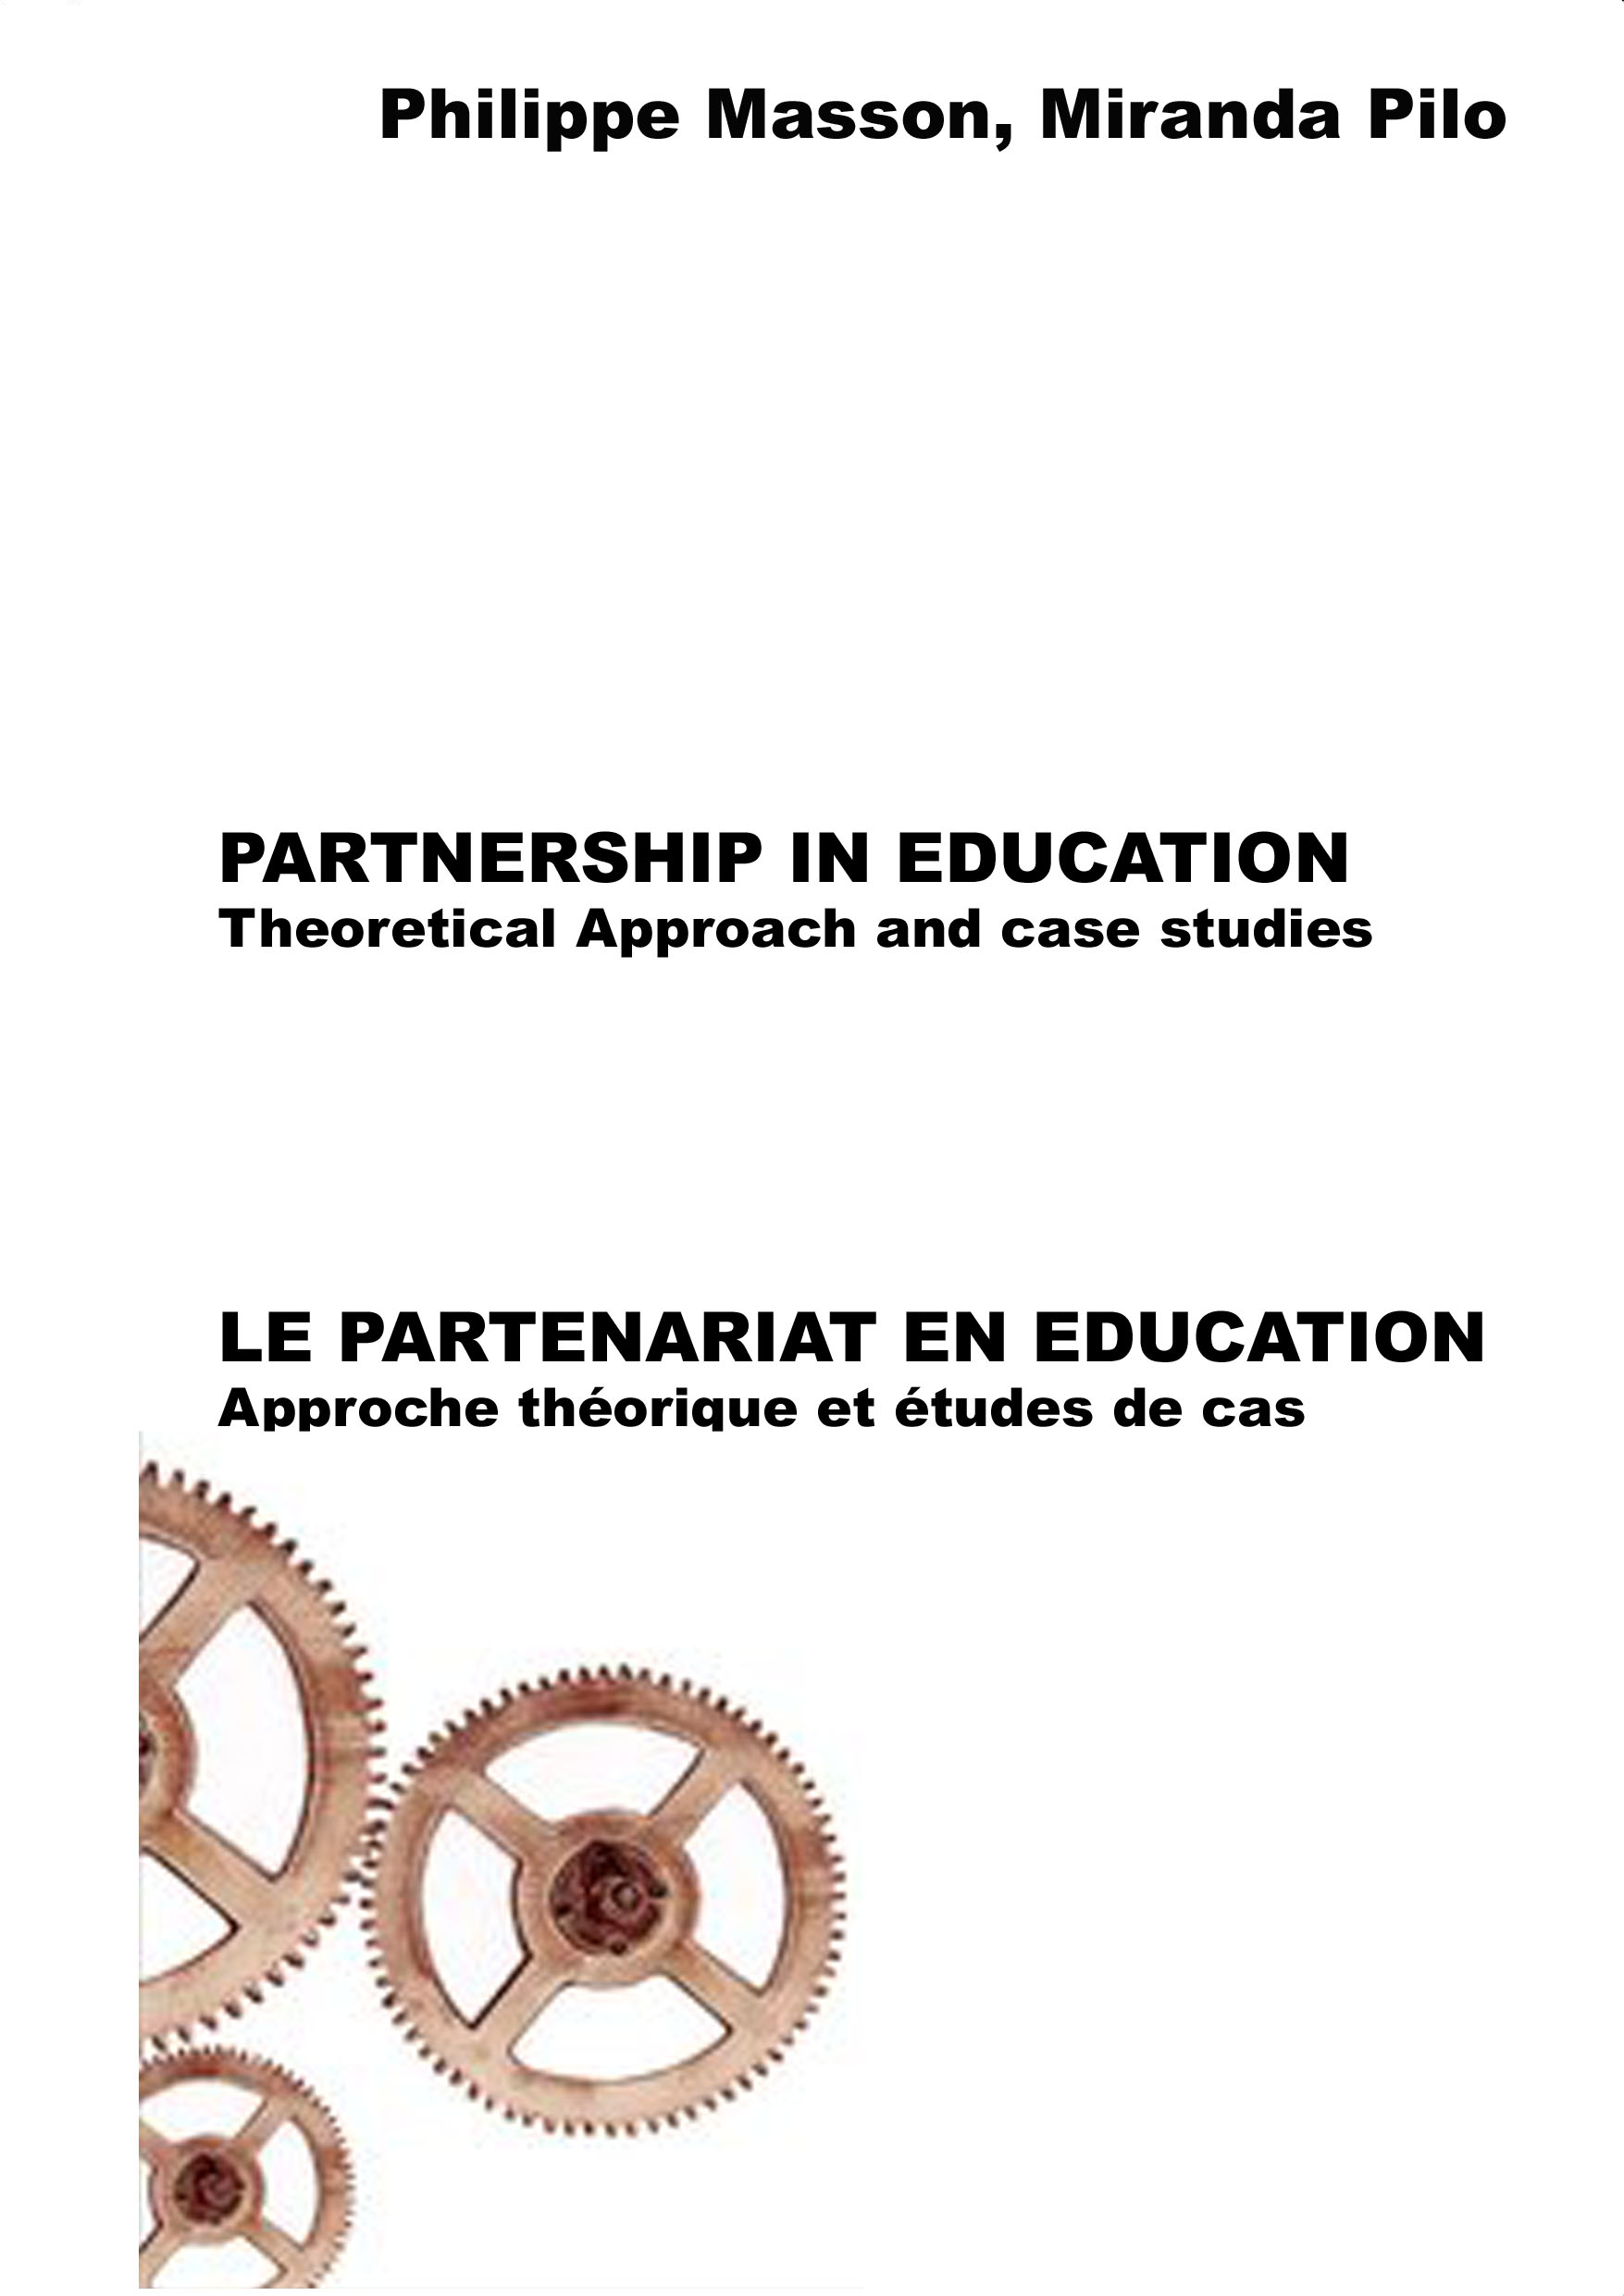 LE PARTENARIAT EN EDUCATION